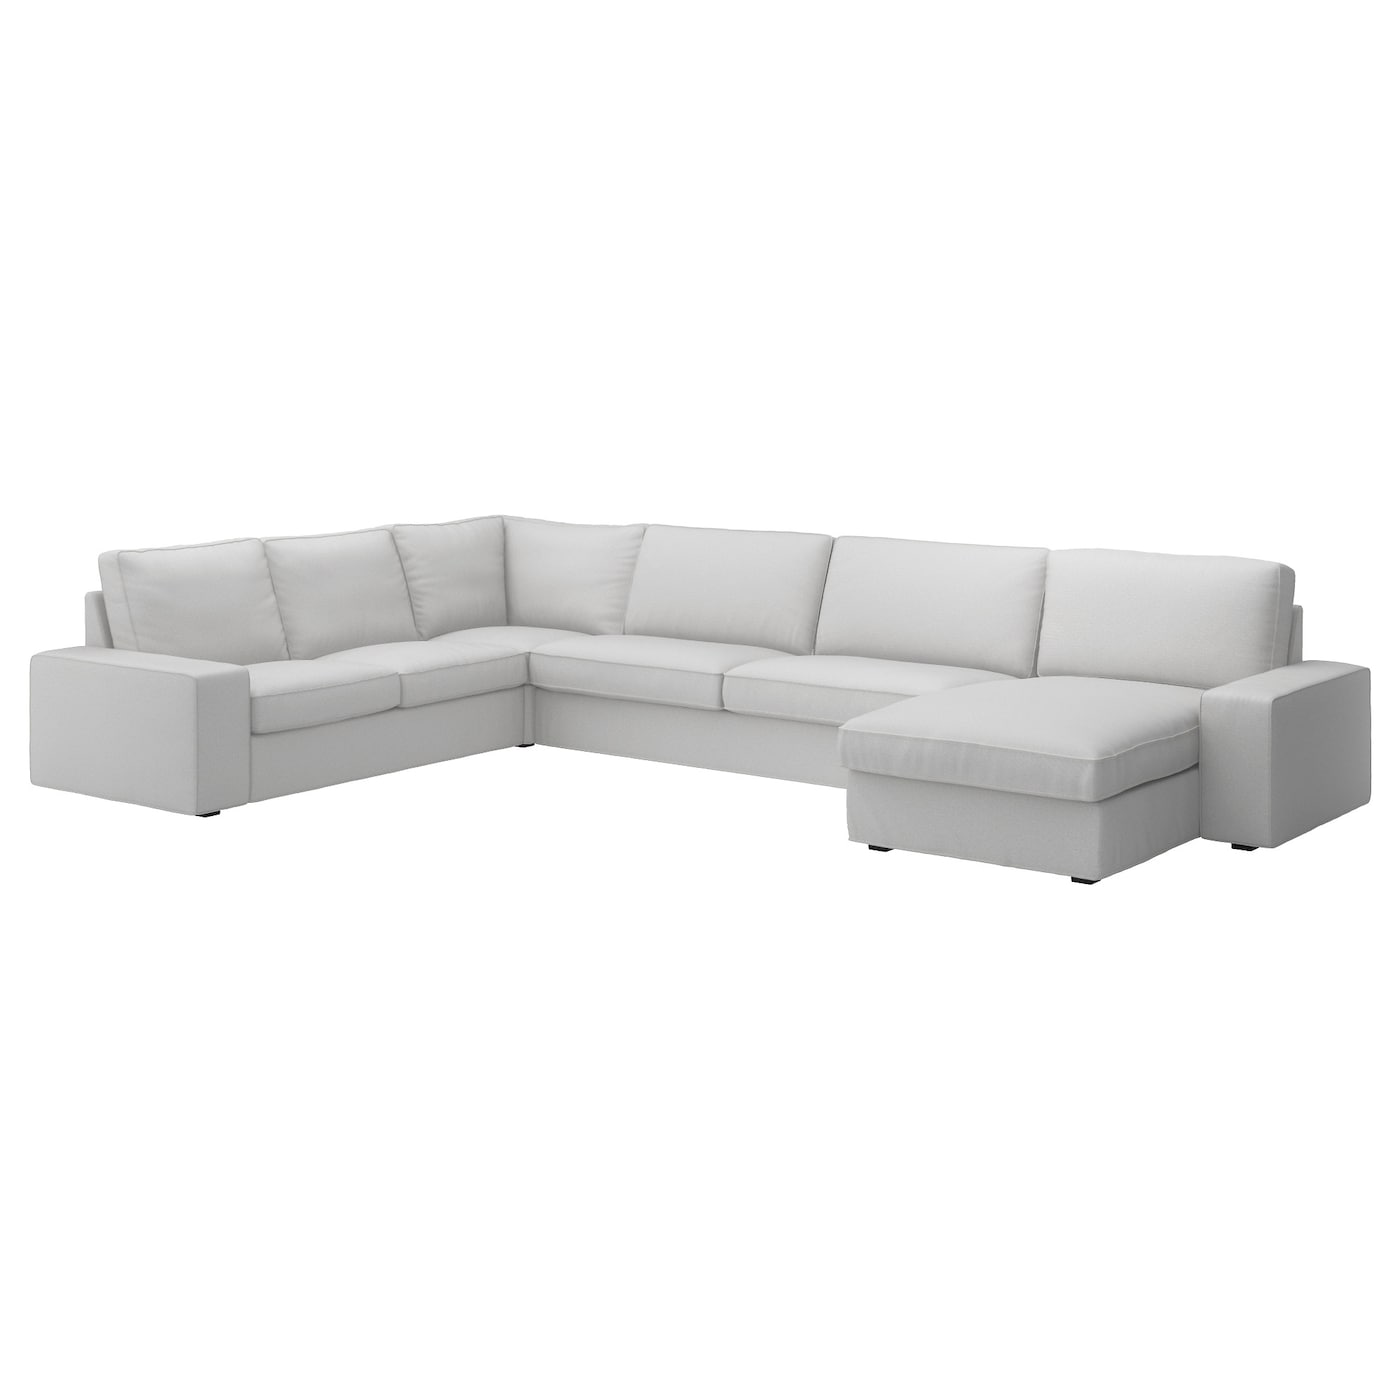 Kivik corner sofa 6 seat with chaise longue ramna light - Cubre sofas chaise longue ...